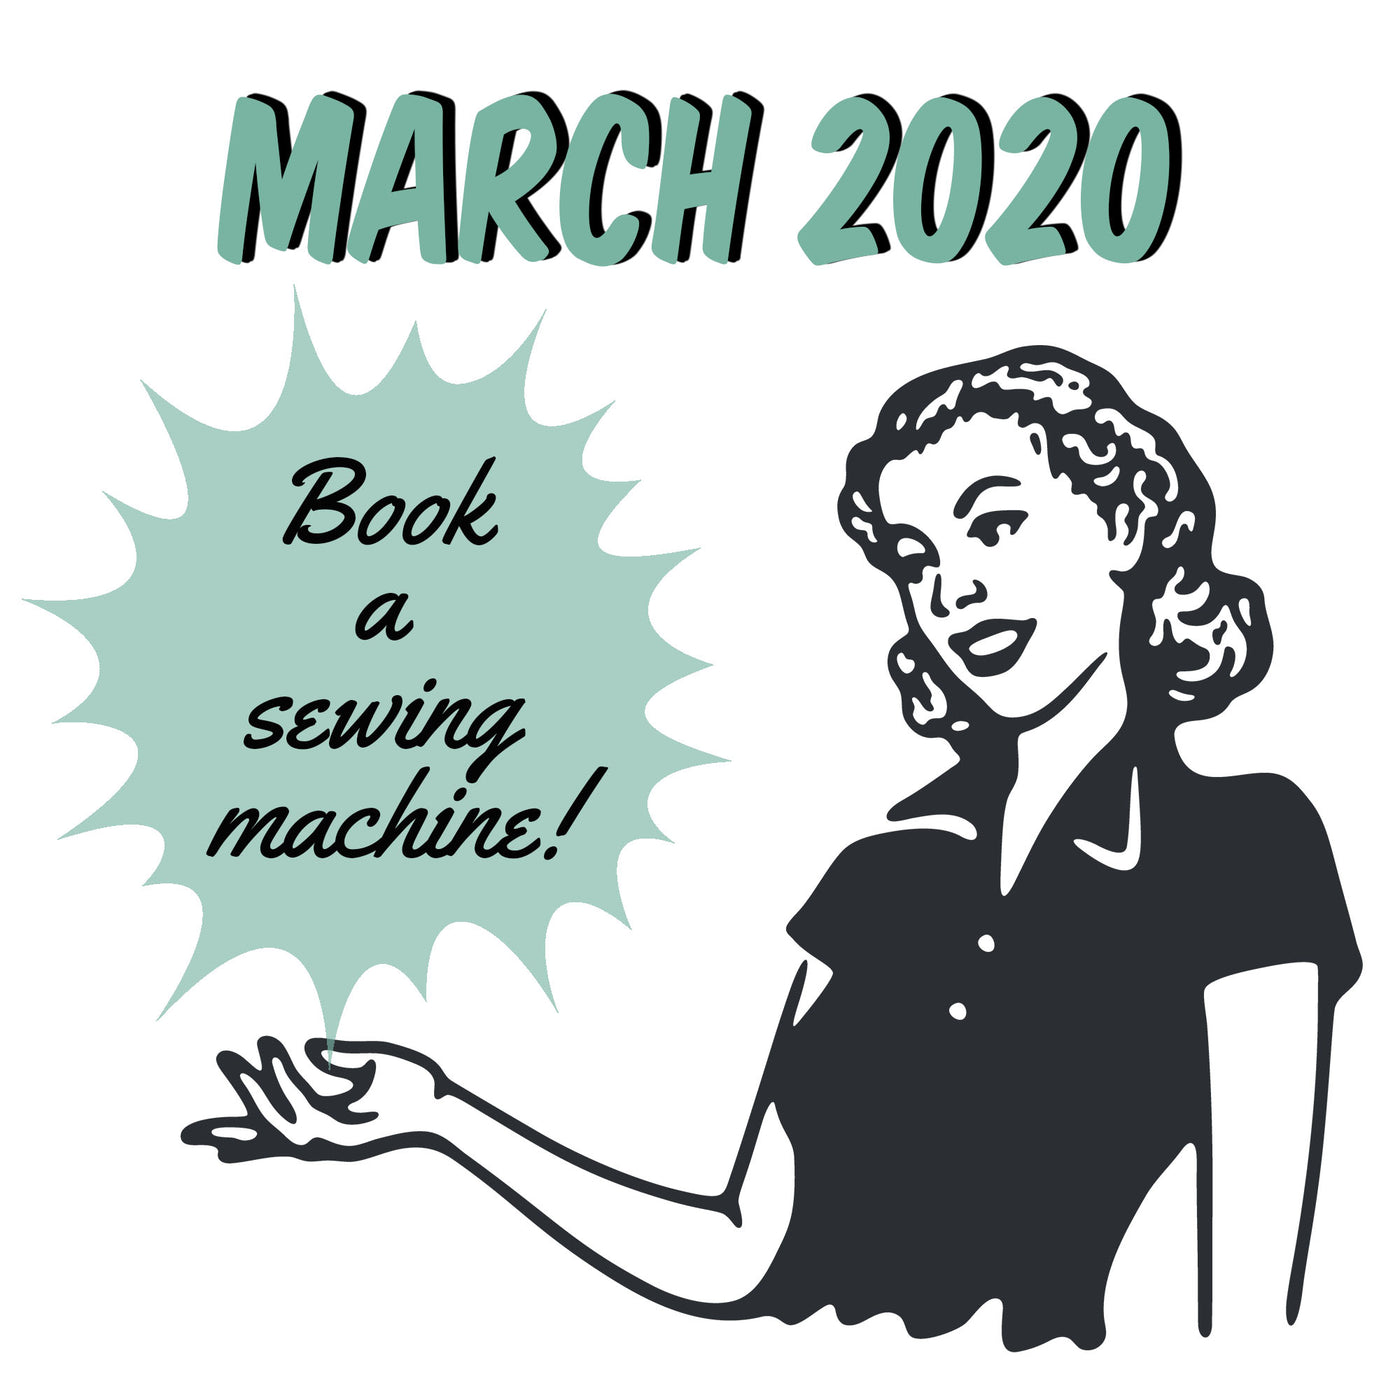 March 2020 - Book a Sewing Machine